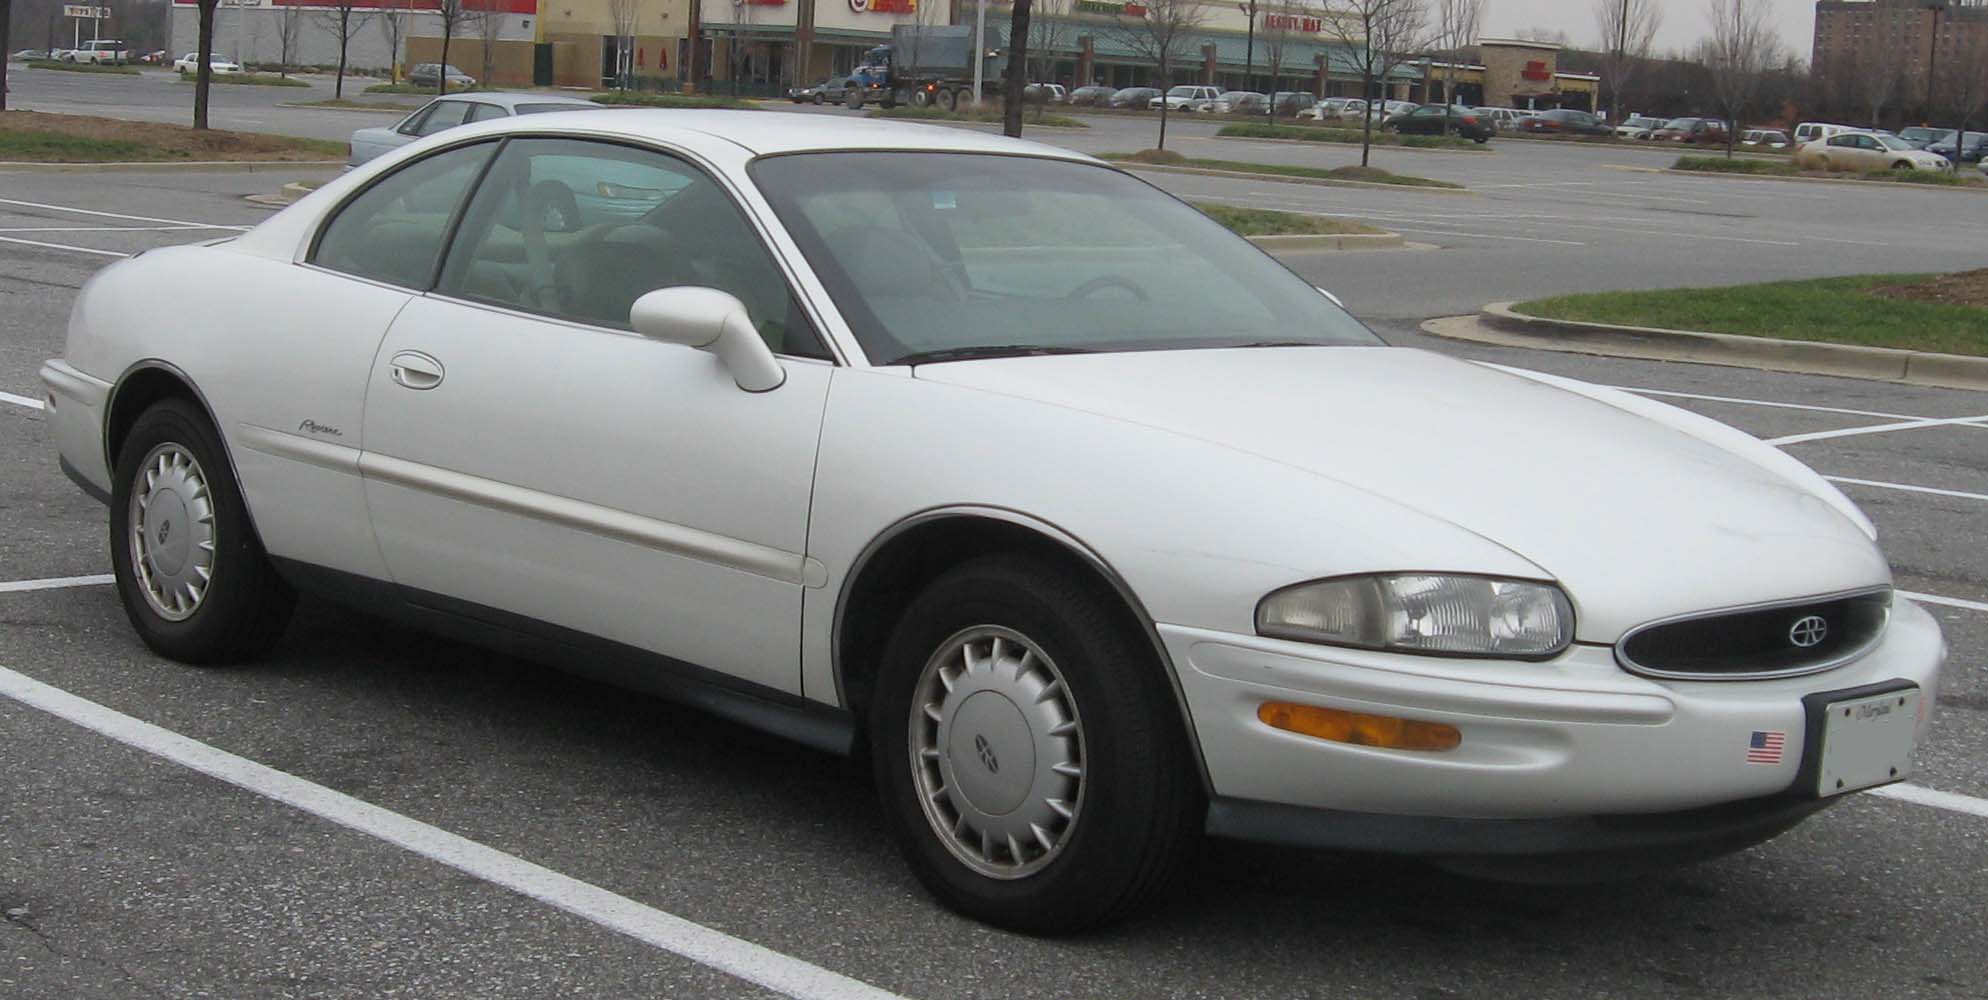 1999 Buick Riviera   pictures, information and specs - Auto